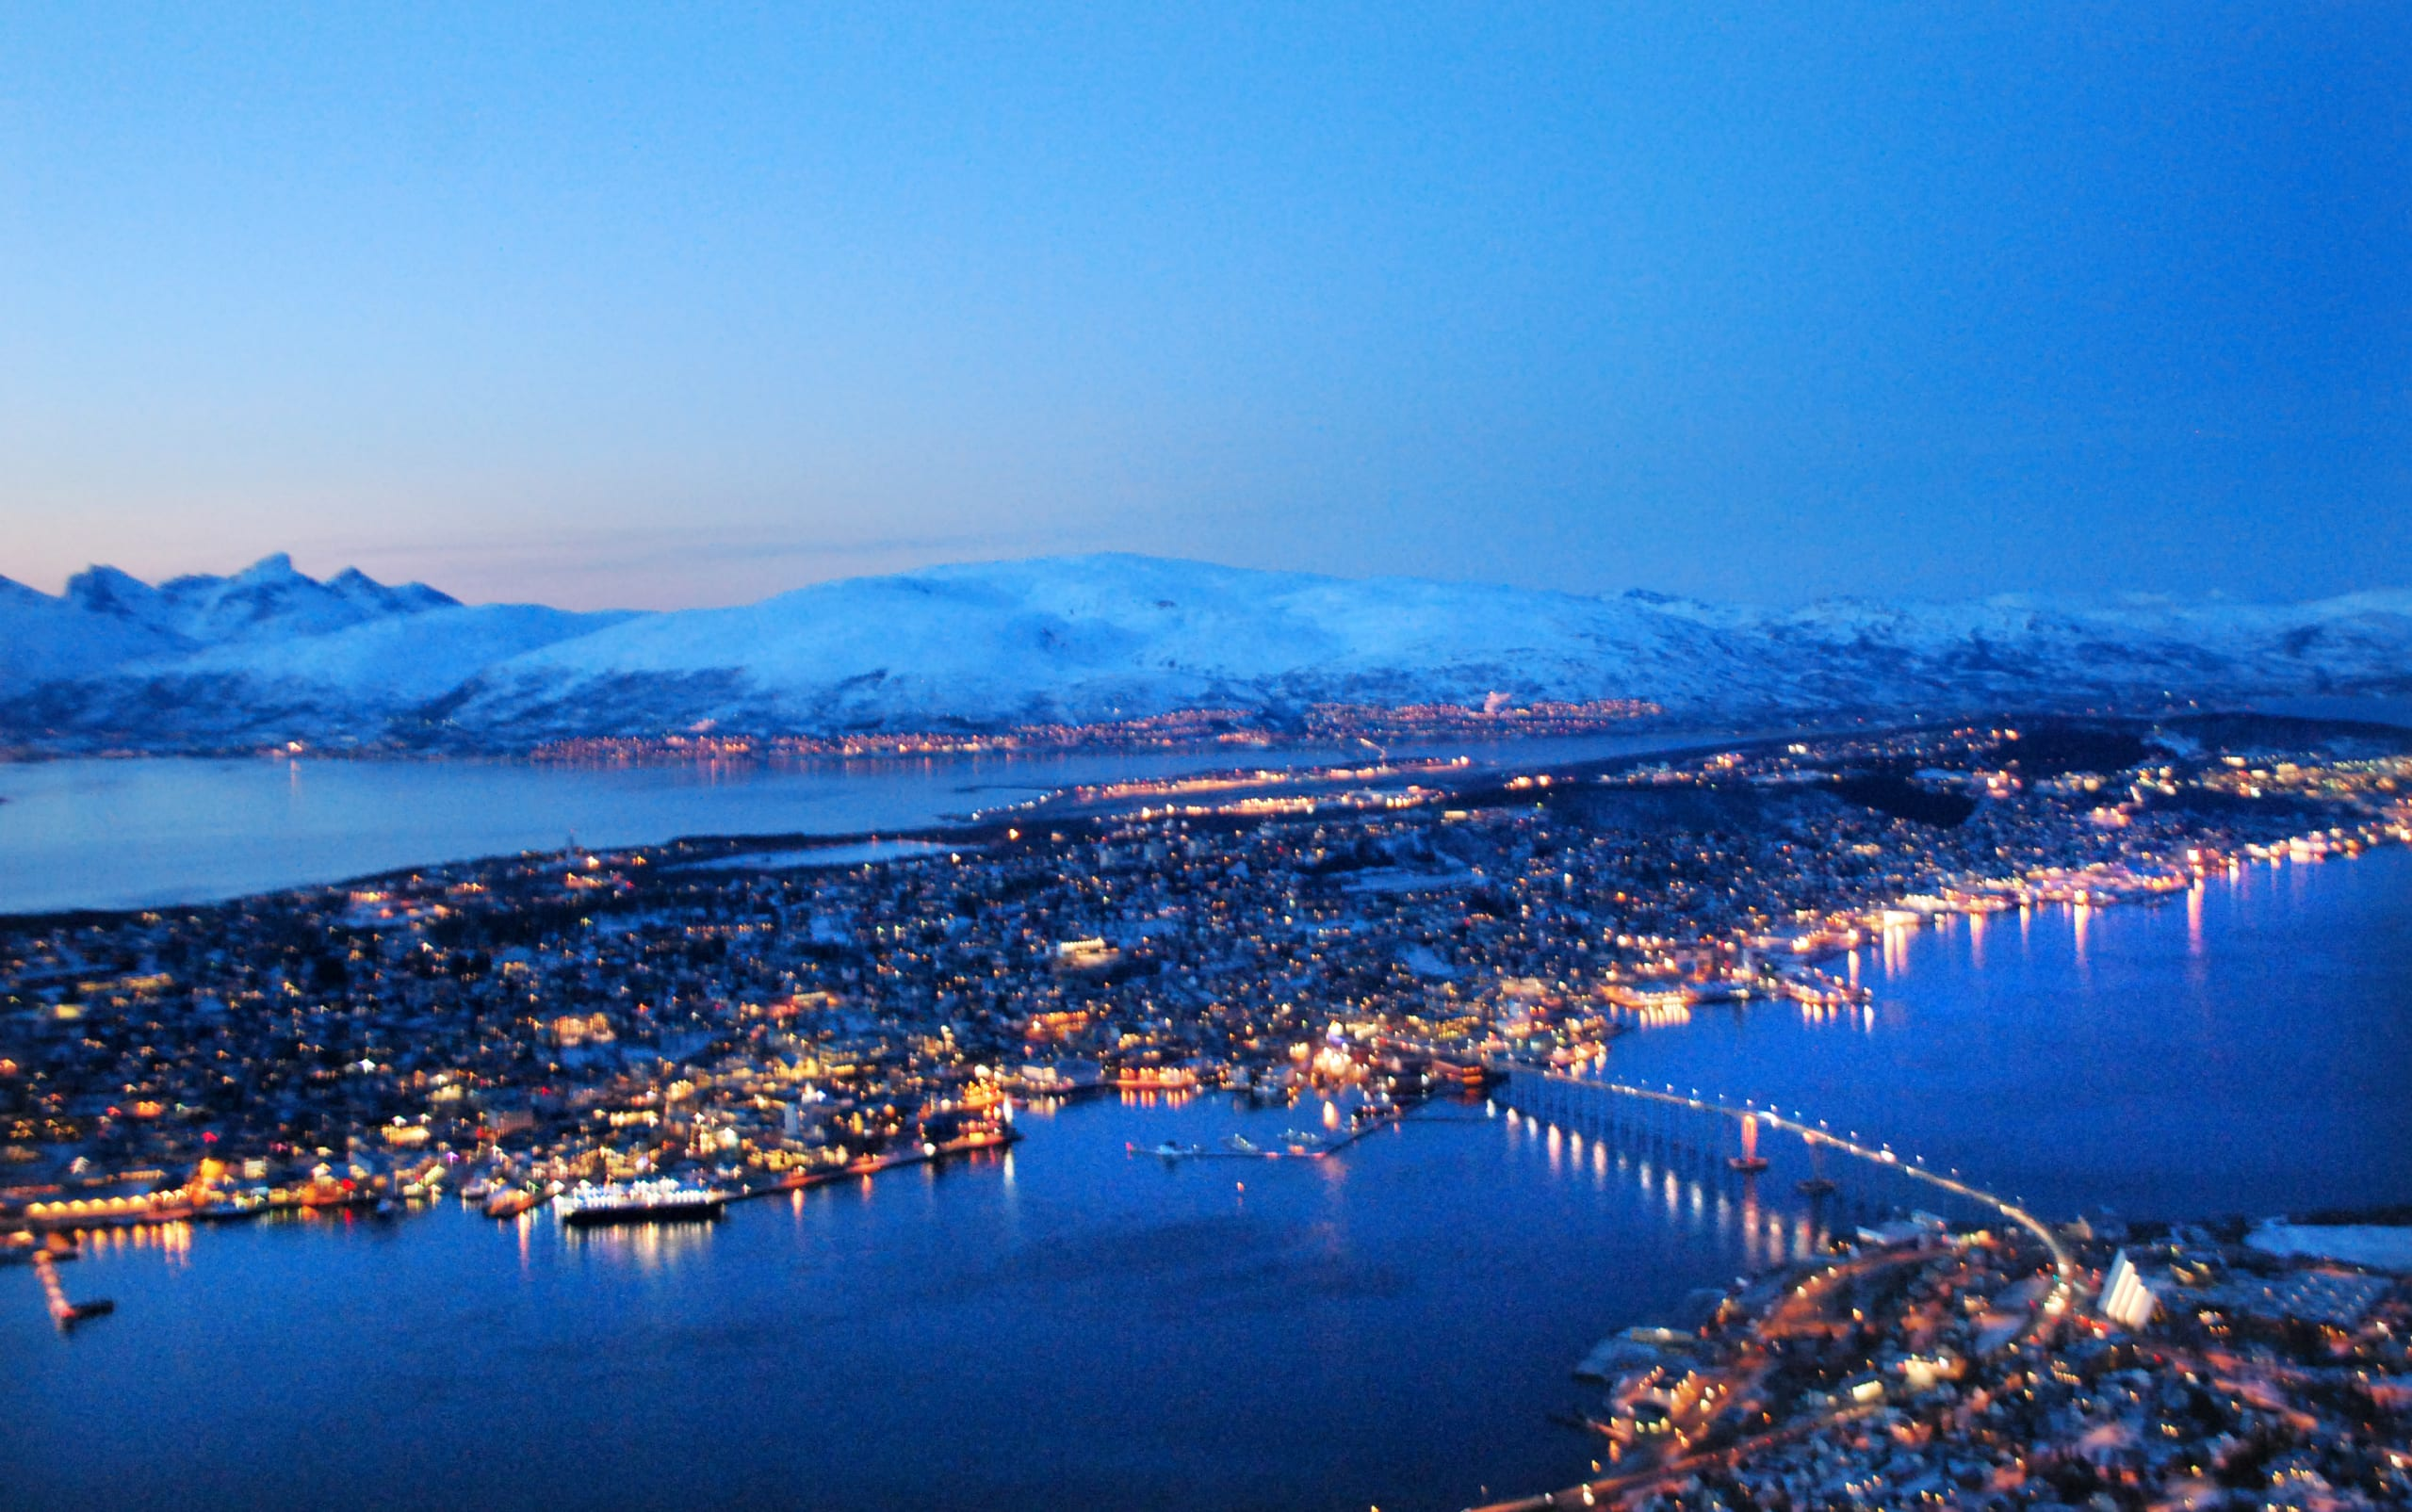 Tromsø seen from the top of Fjellheisen